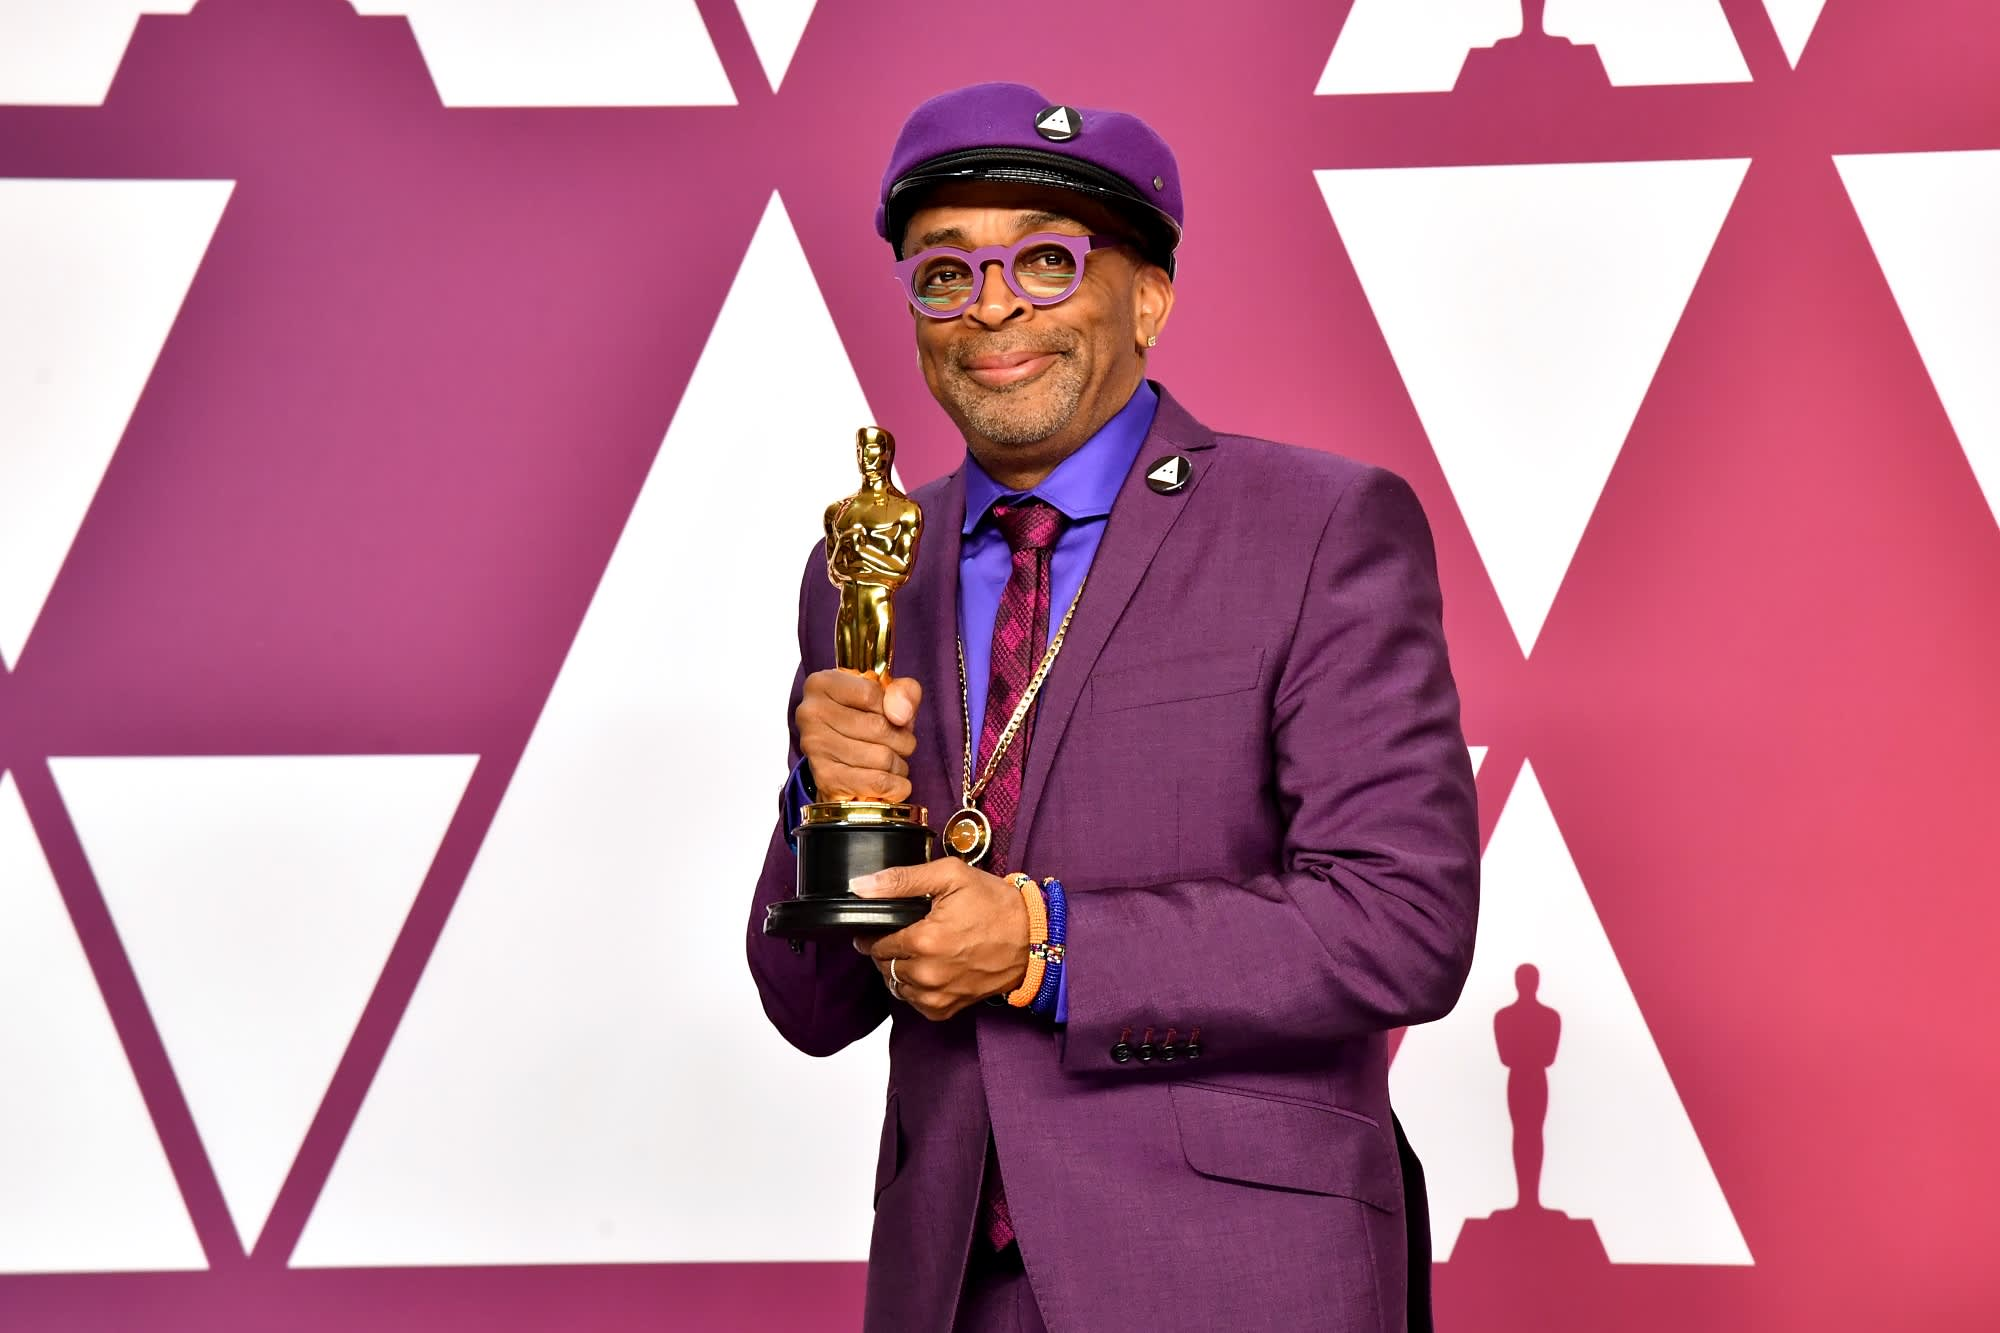 Spike Lee wins his first Oscar, 30 years after 'Do the Right Thing'